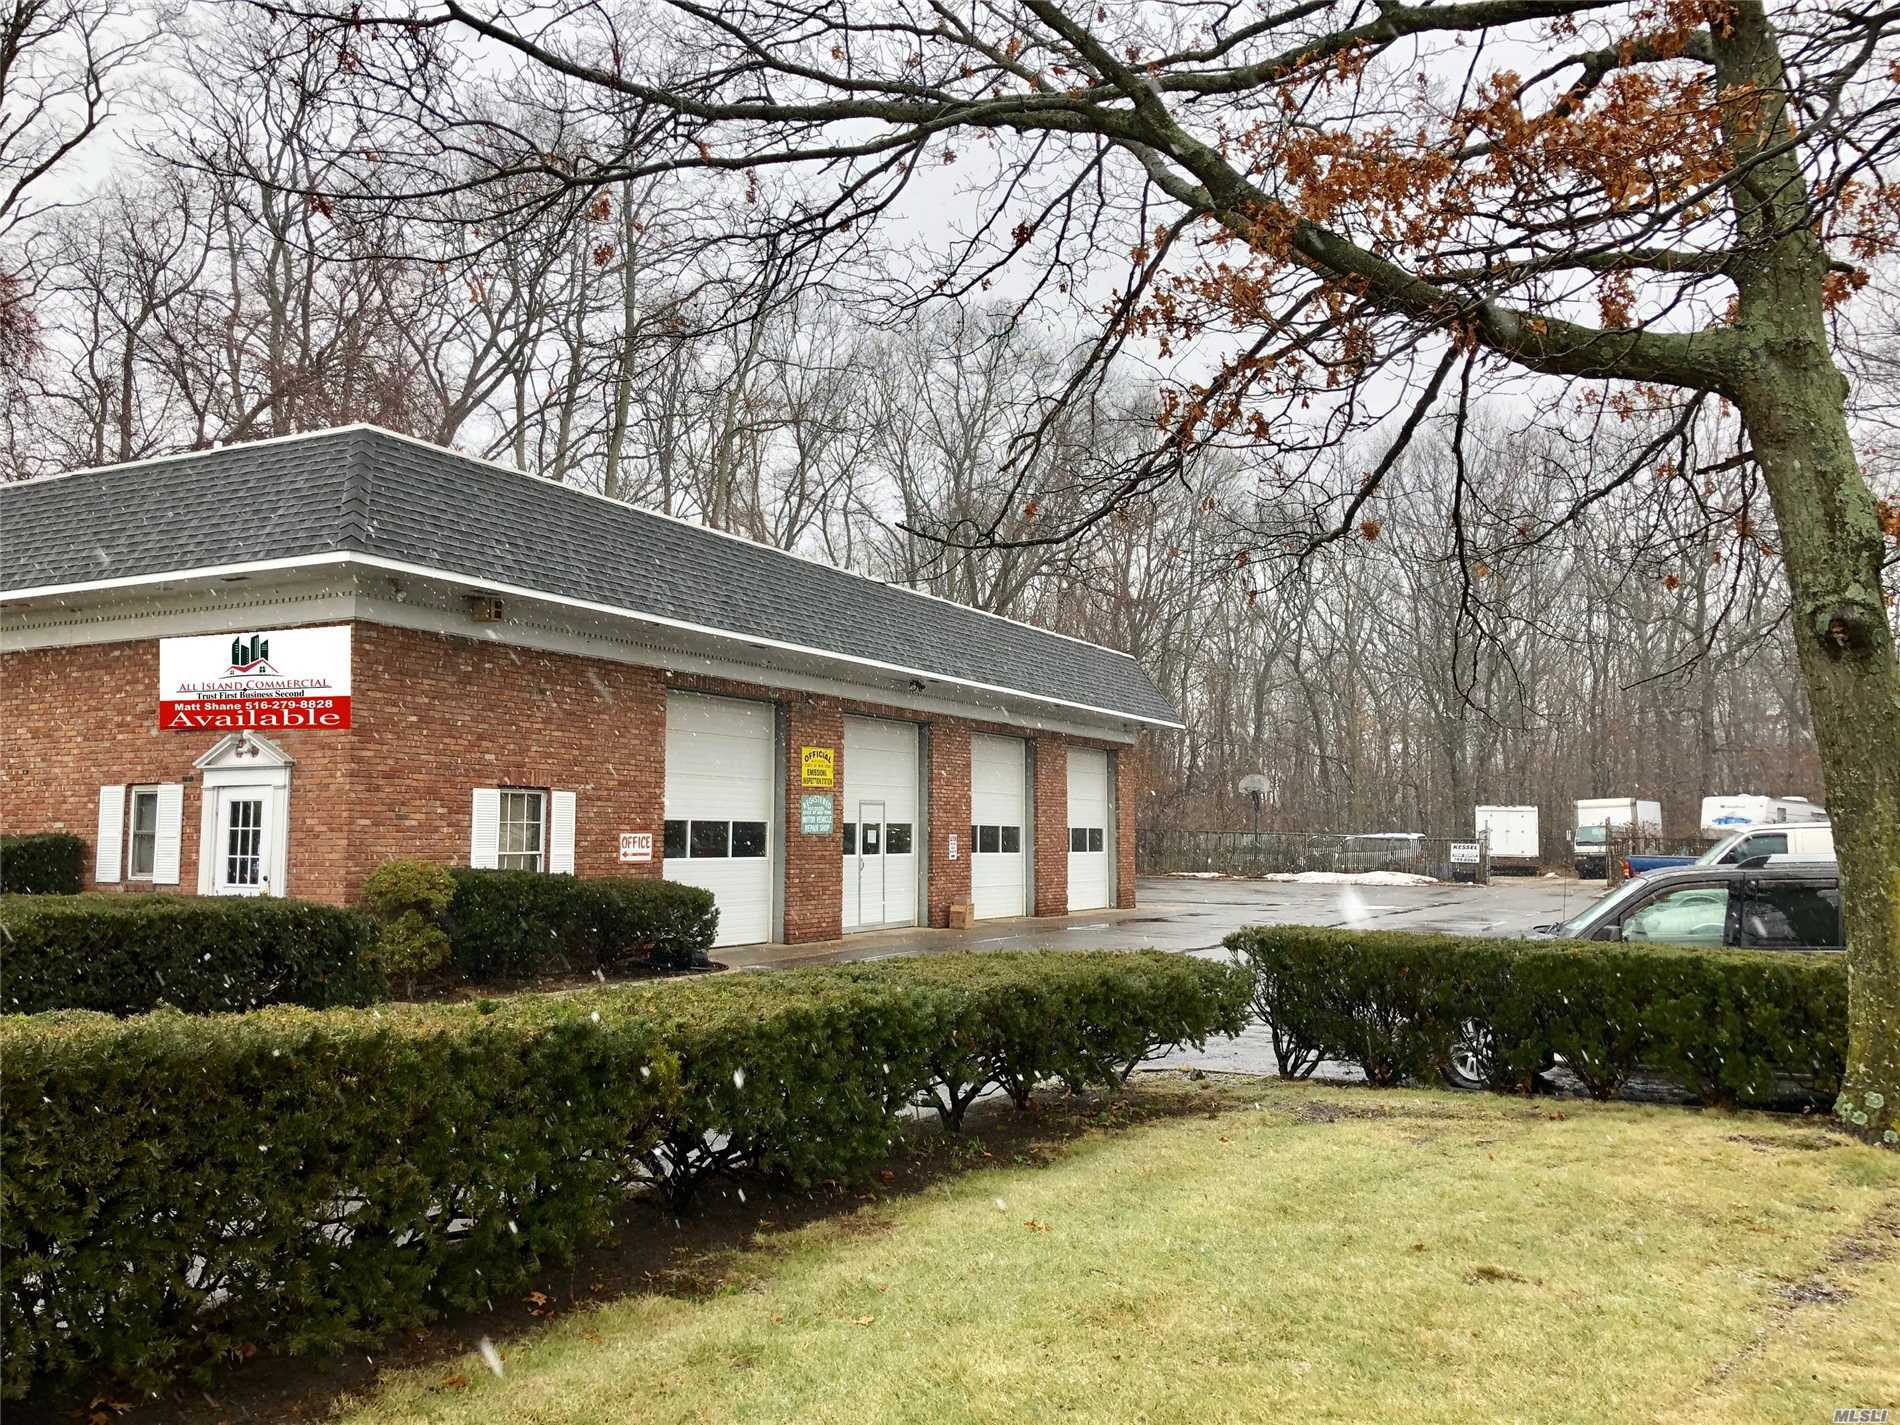 Calling All Mechanics, Auto Repair People & Investors. Beautiful 4-Bay Auto Repair Building With Large Parking Lot For Sale Off Of Busy Route 25A. Property Features 21' Ceilings, 3 Phase Electric, 36 Parking Spaces, (4) 12'X10' Garage Doors, (4) 15'X32' Bays, Waste Oil Heater +++